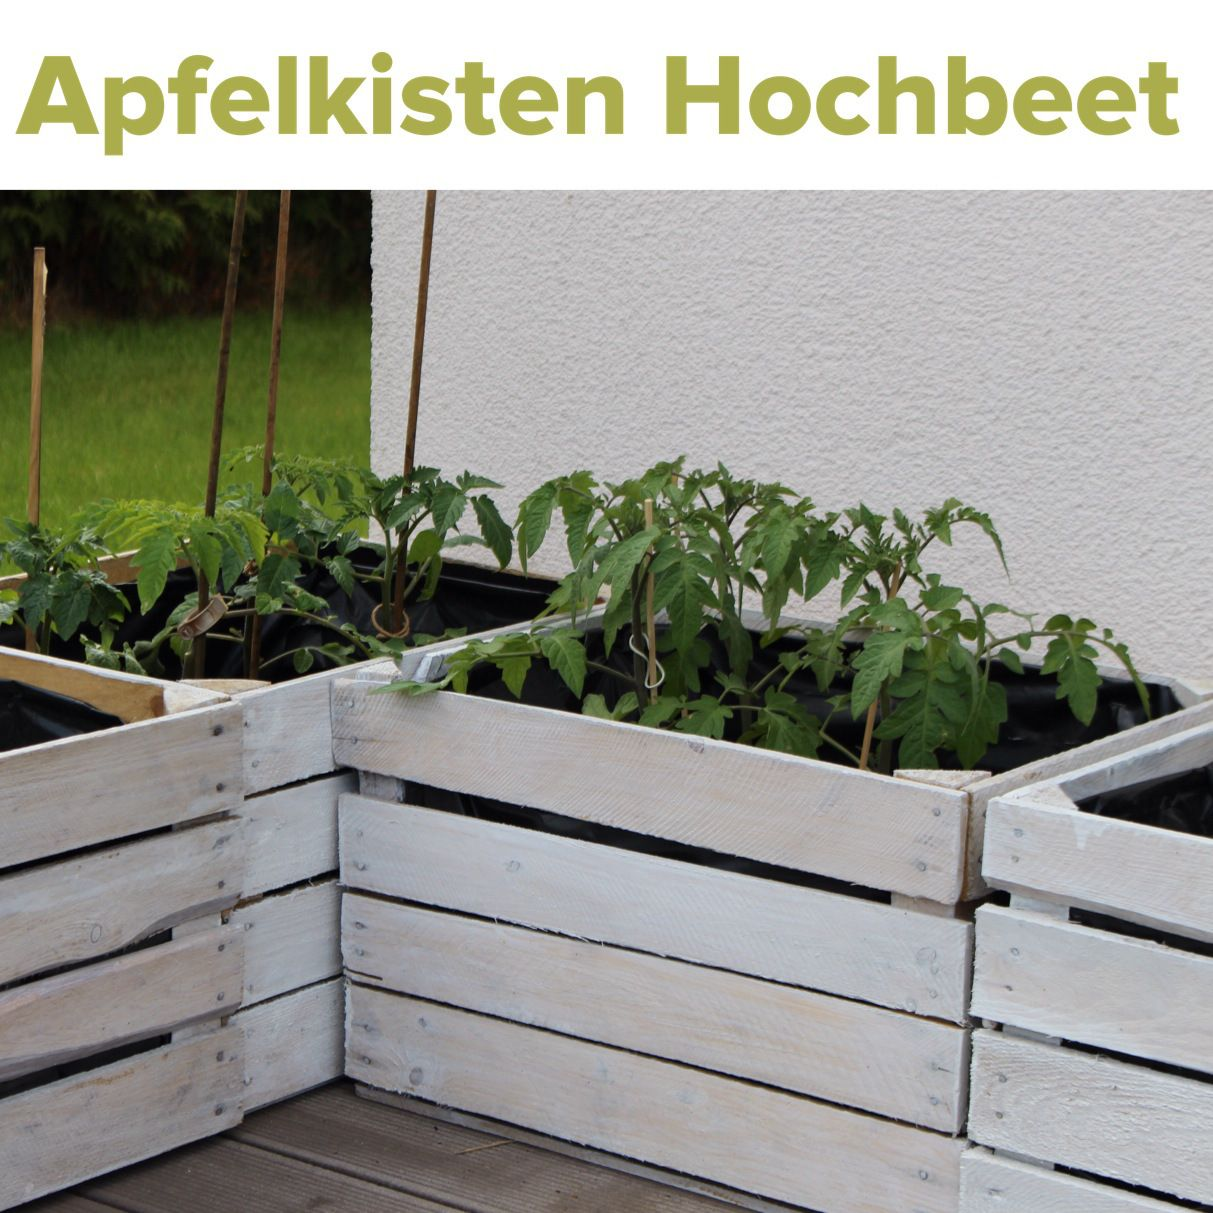 obstkisten upcycling hochbeet gem sepflanzen growing plants pinterest garten hochbeet und. Black Bedroom Furniture Sets. Home Design Ideas